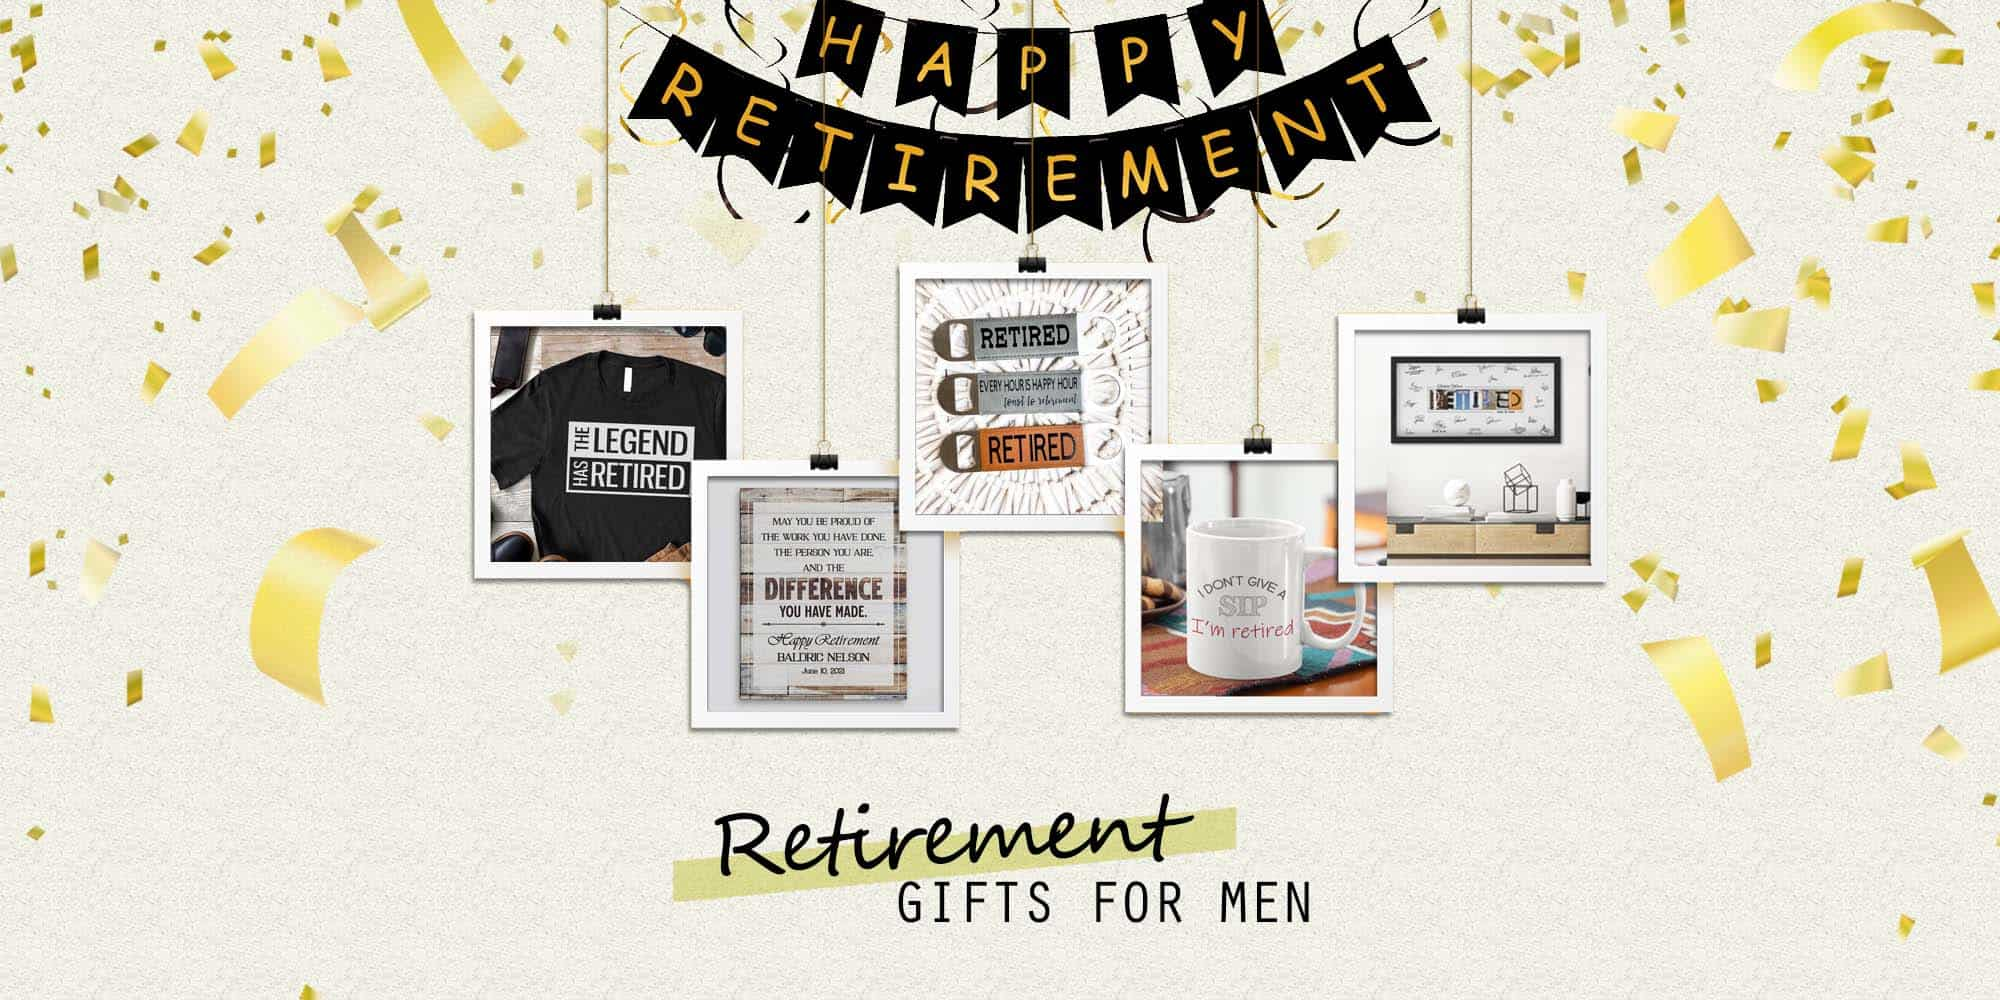 45+ Best Retirement Gifts For Men to Celebrate His Next Chapter (2021)